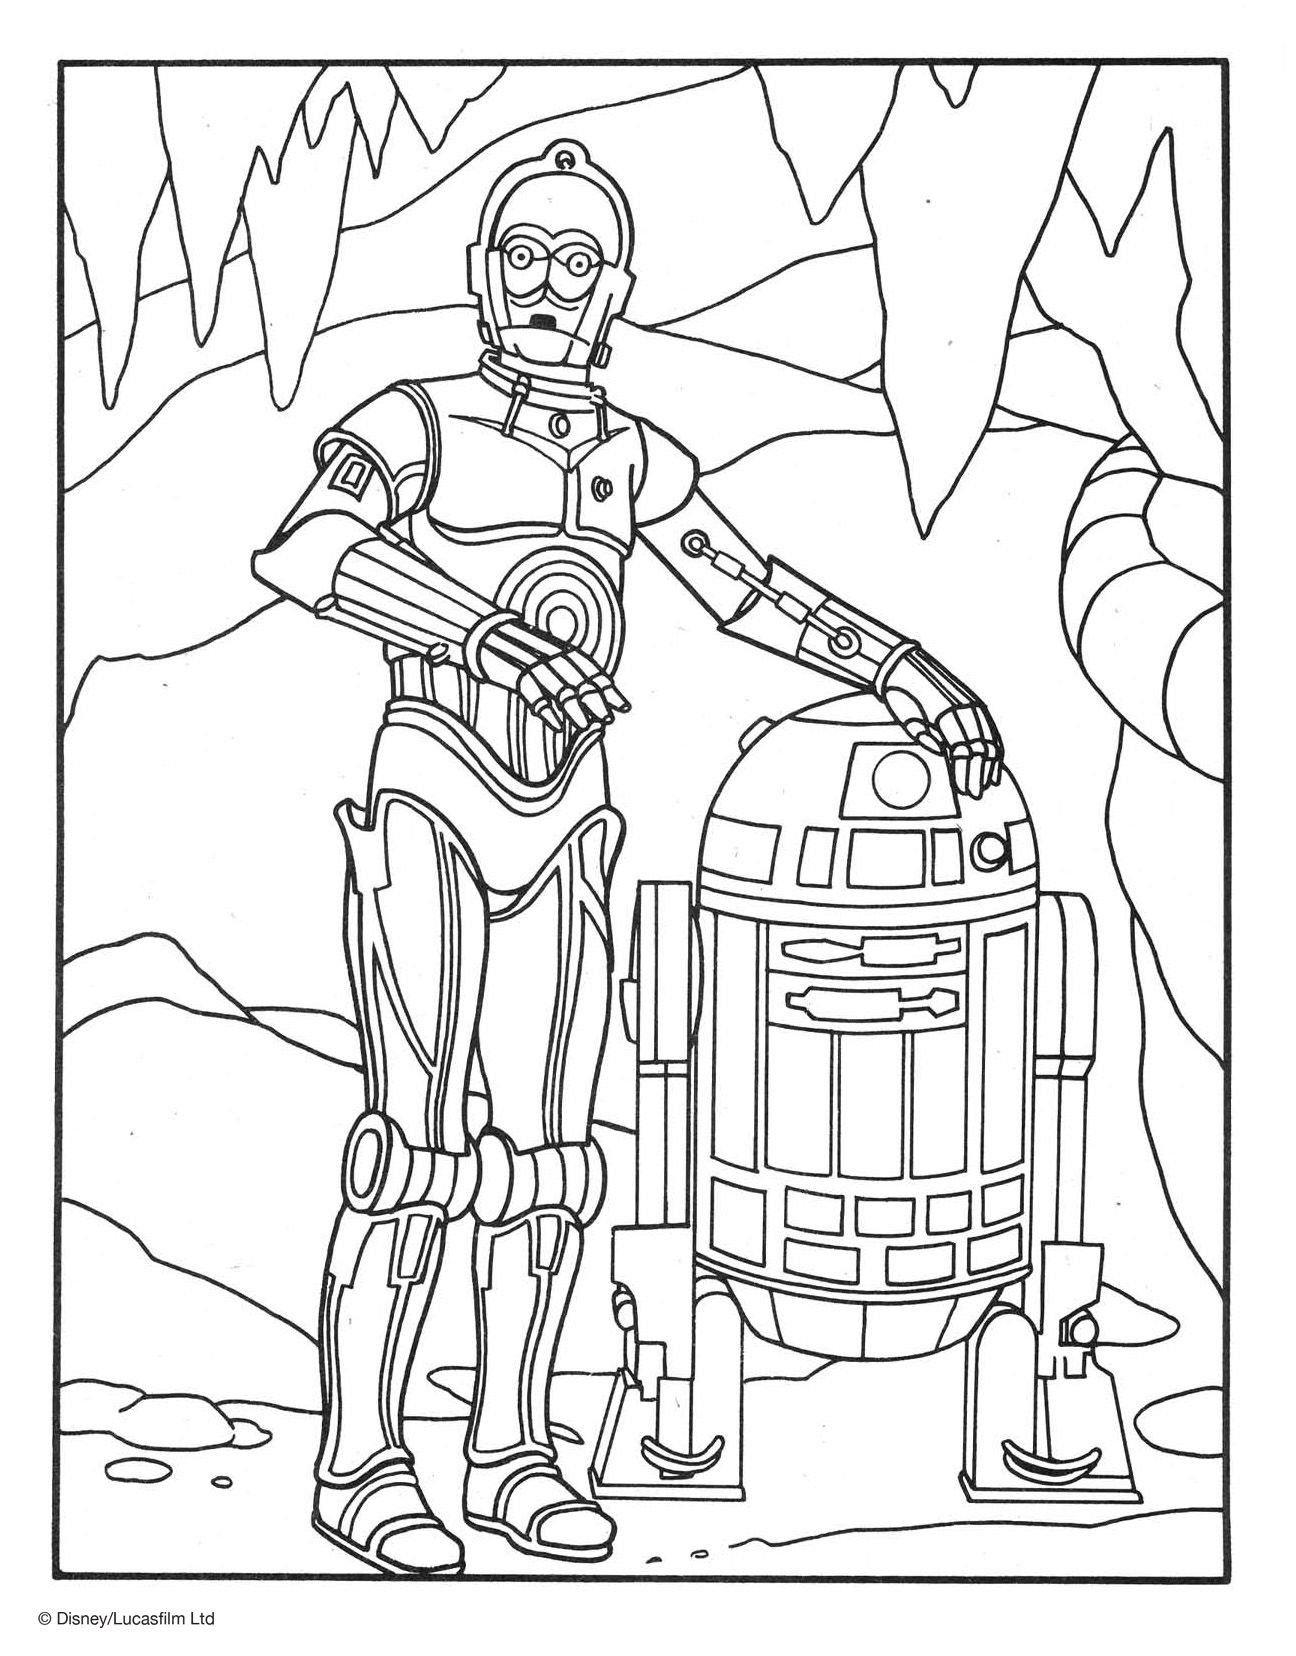 New Coloriage C3po Coloriage C3po New Coloriage C3po To Print Coloriage Star Wars C6po C3po 2 Cli Star Wars Coloring Book Star Wars Drawings Coloring Pages